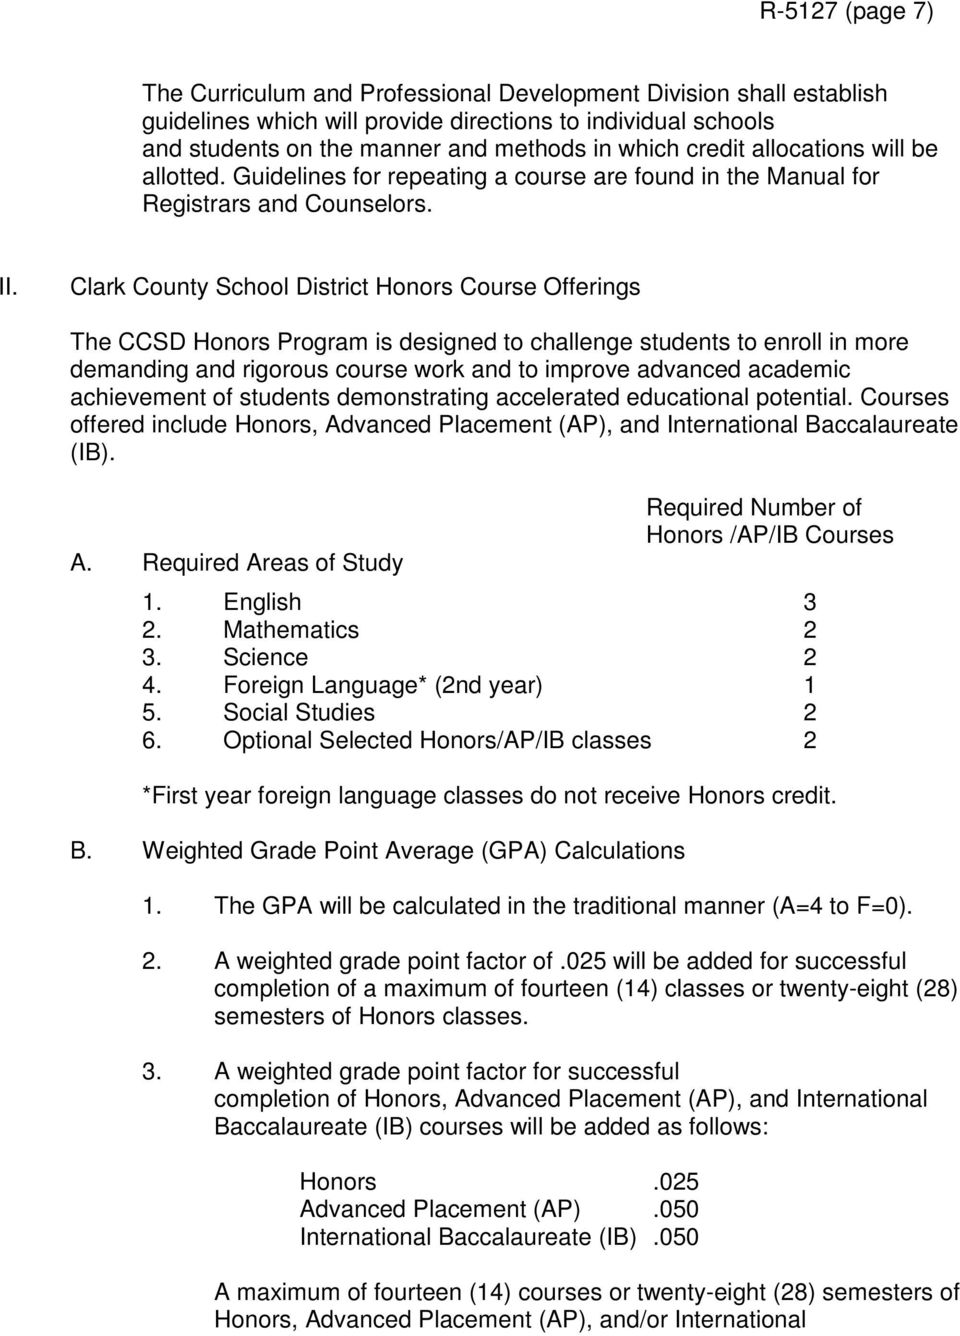 Clark County School District Honors Course Offerings The CCSD Honors Program is designed to challenge students to enroll in more demanding and rigorous course work and to improve advanced academic